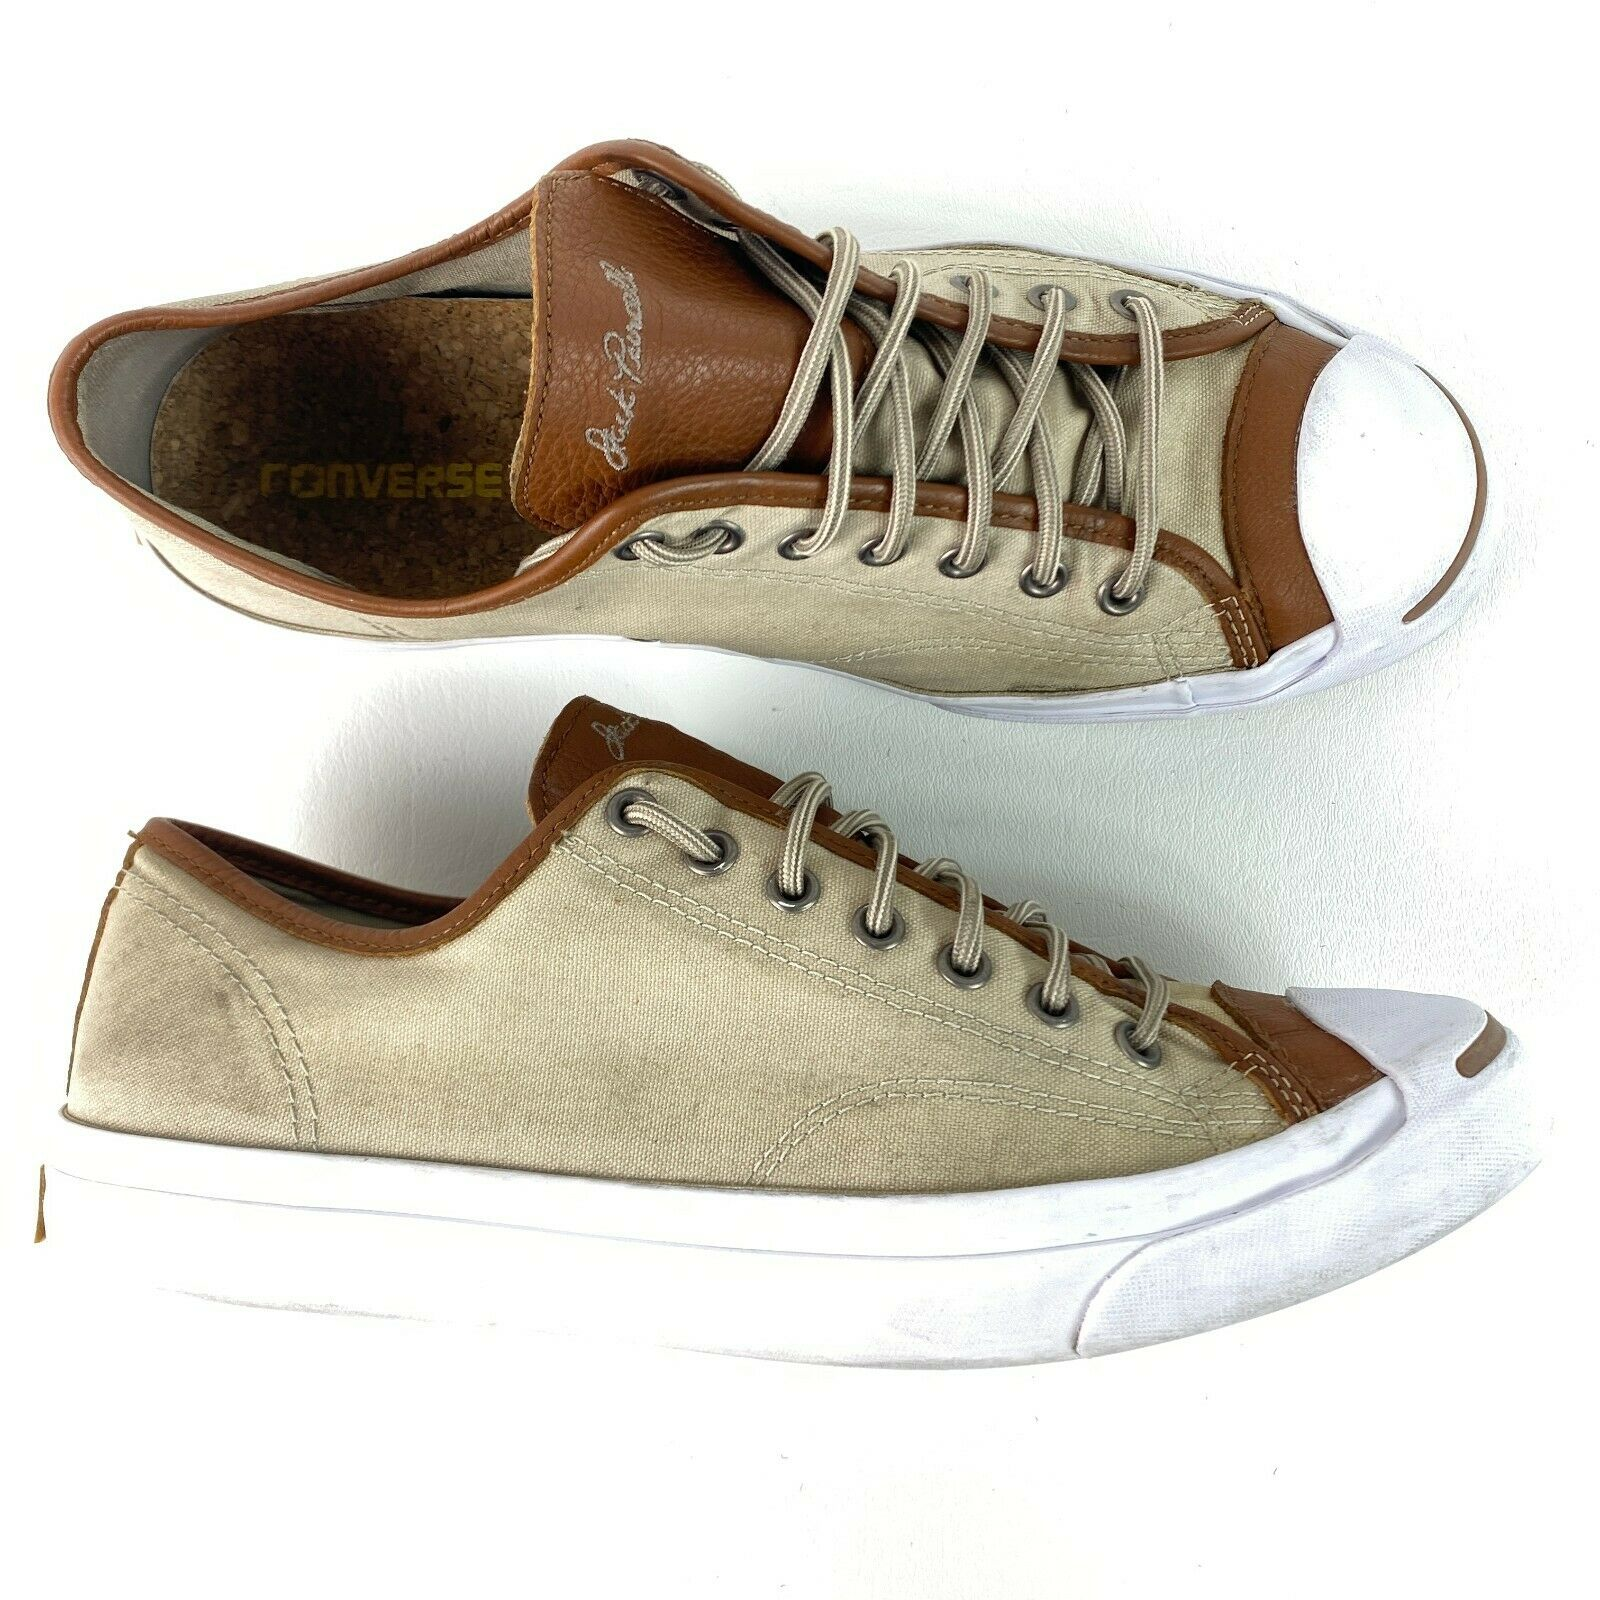 Converse Womens' Size 9.5 Jack Purcell